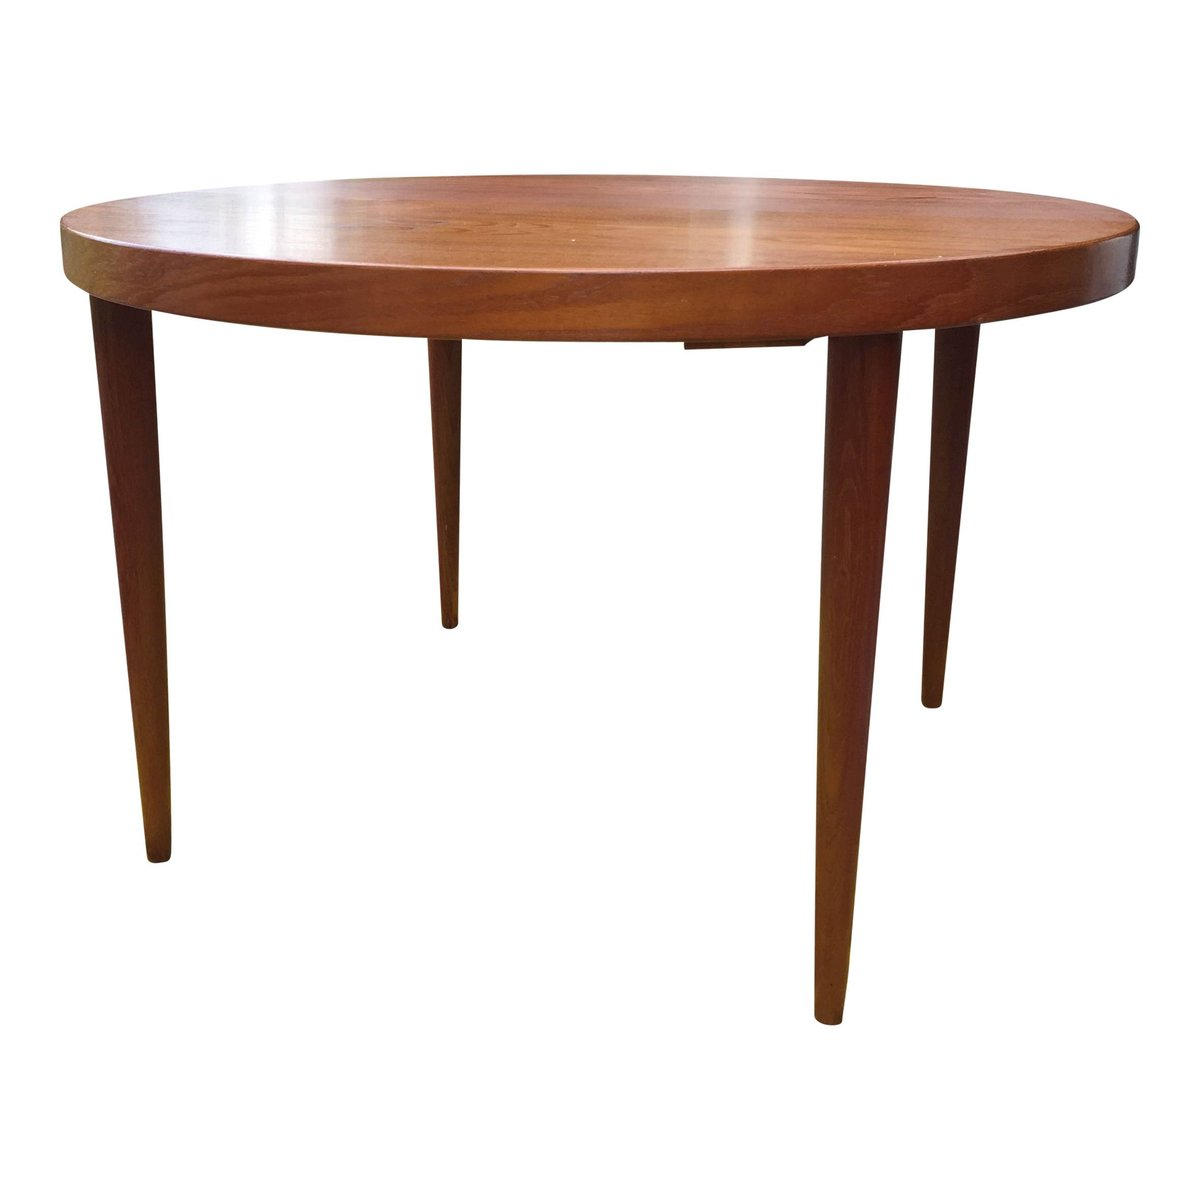 Round Teak Dining Table By Kai Kristiansen For Sale At Pamono